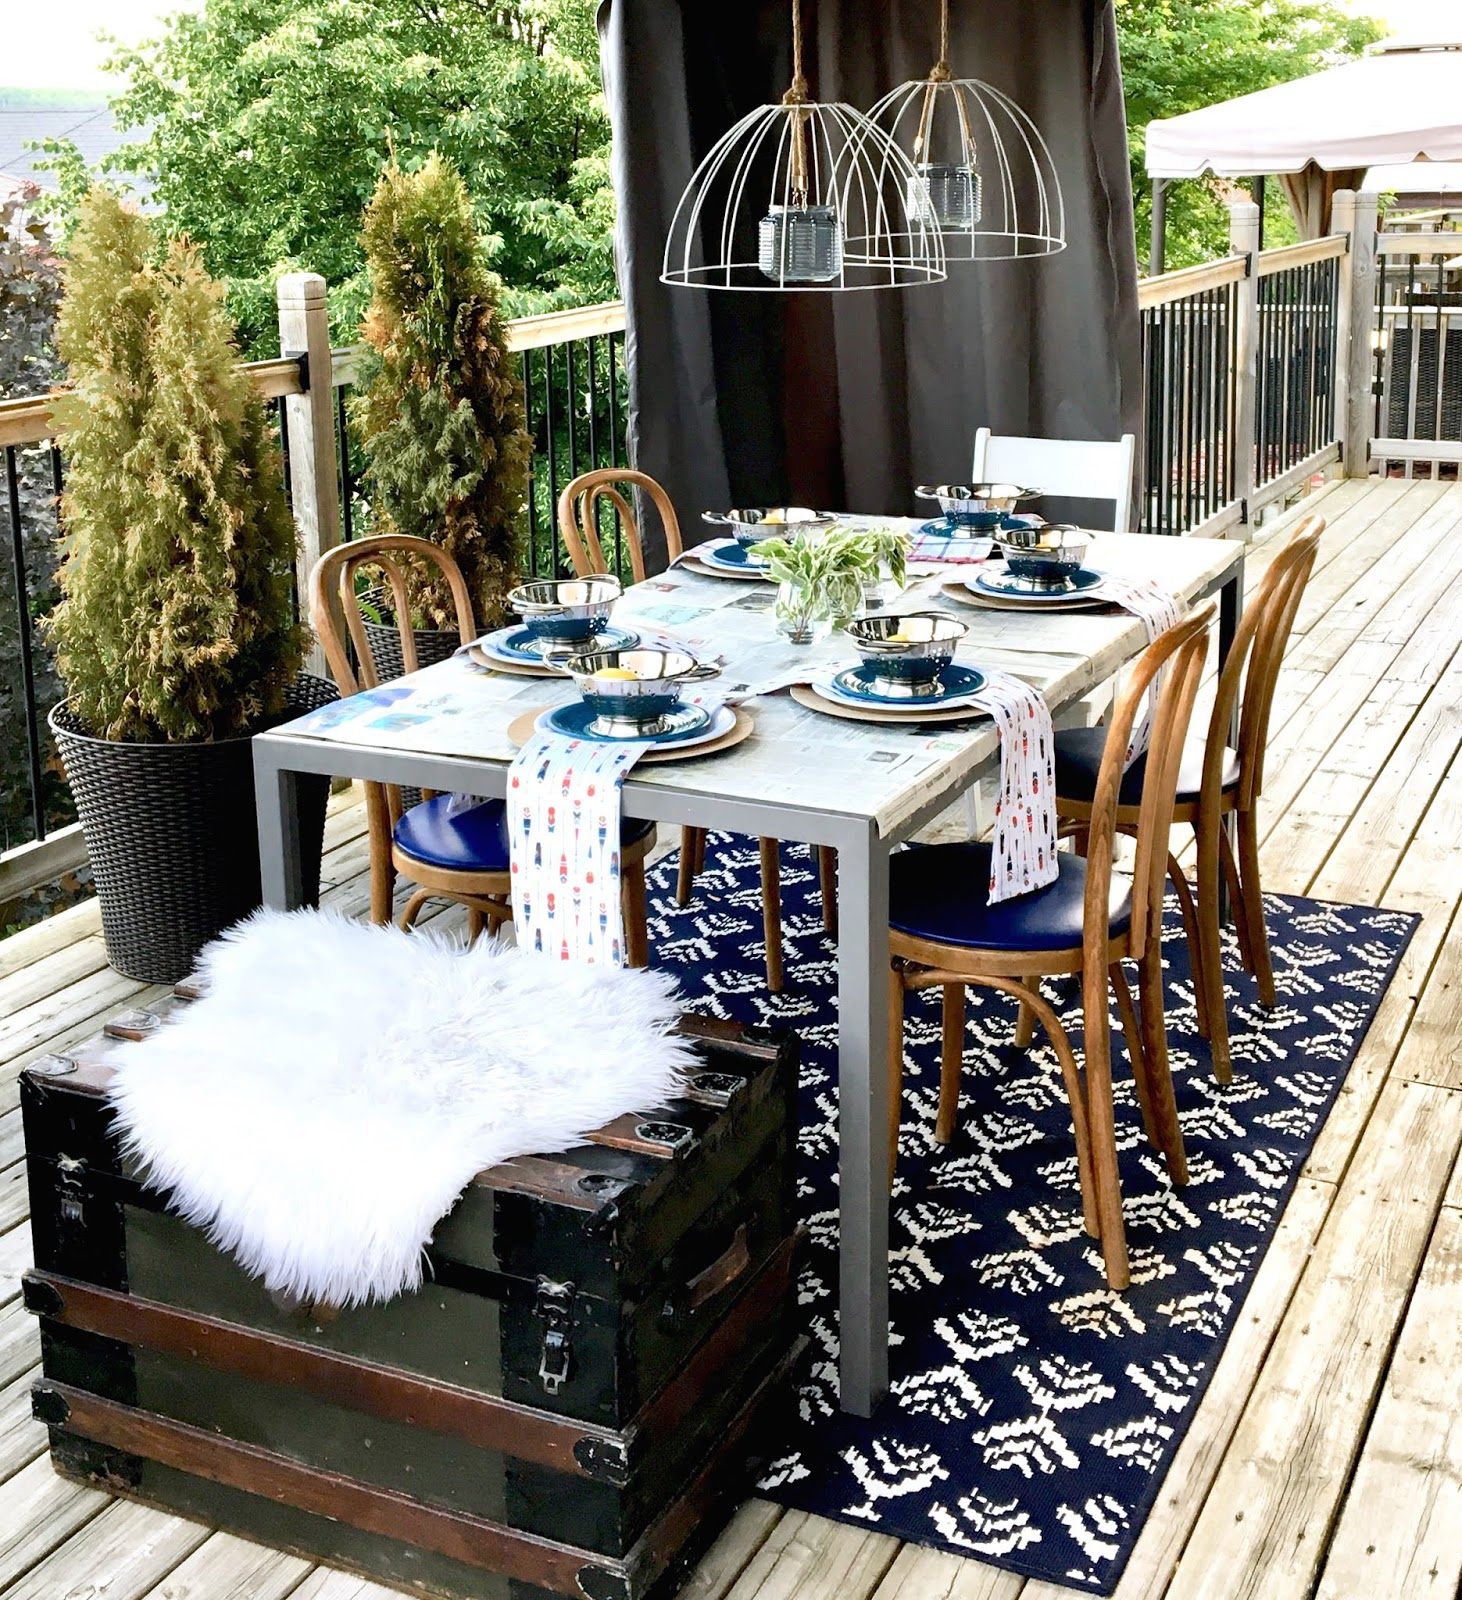 Lobster-dinner-table-setting-KSP-harlow-and-thistle-2